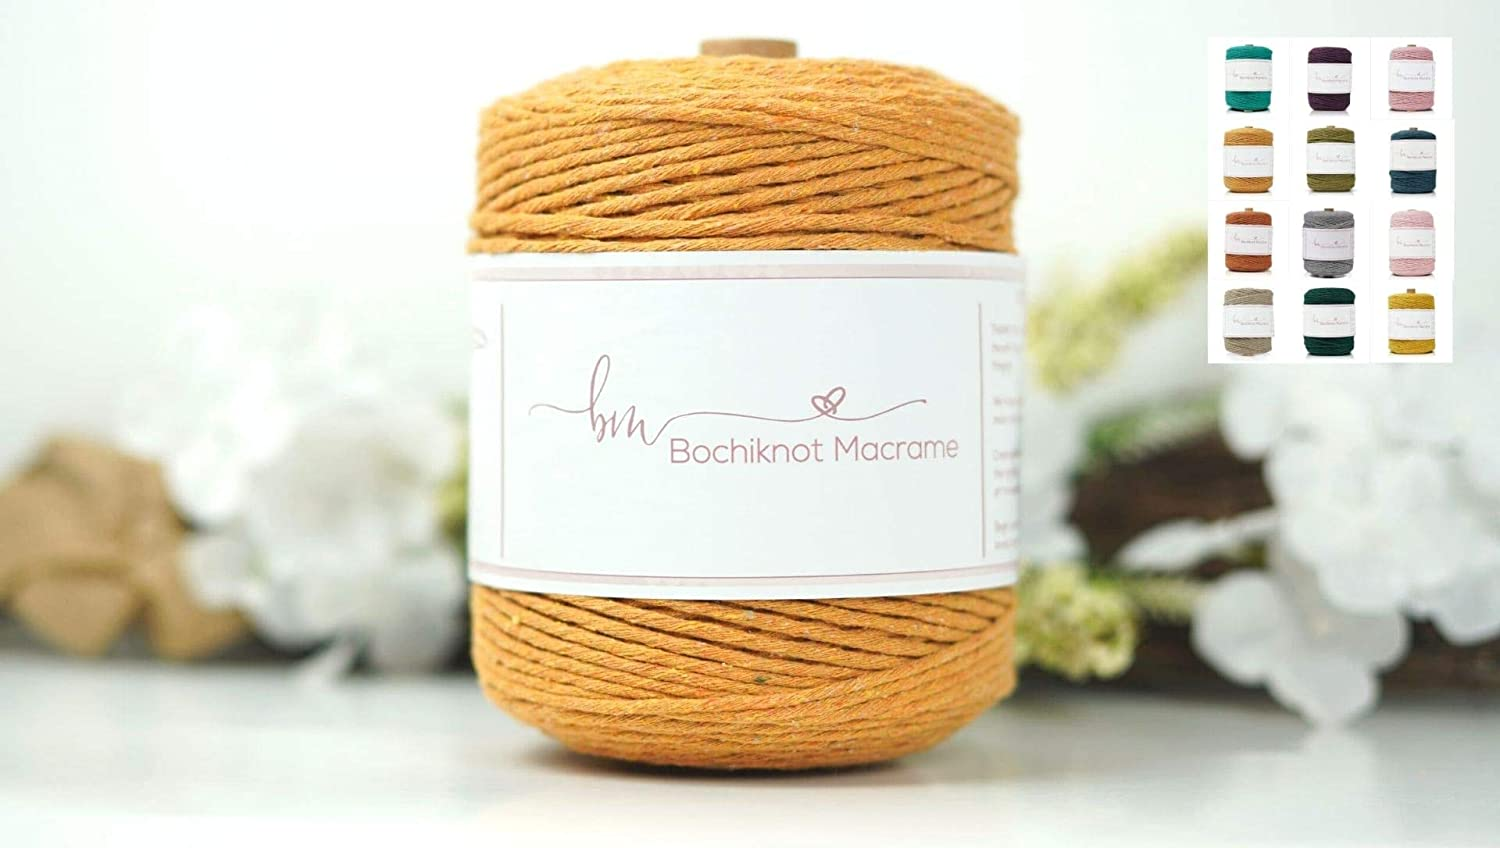 Bochiknot Macrame |100% Natural Cotton Cord, 5mm x 500 feet | Soft Rope Colored Twisted String Yarn for Craft Kits, Art Supplies, Knot Materials, Plant Hangers, Wall Hangings (Squash, 150 Yards)